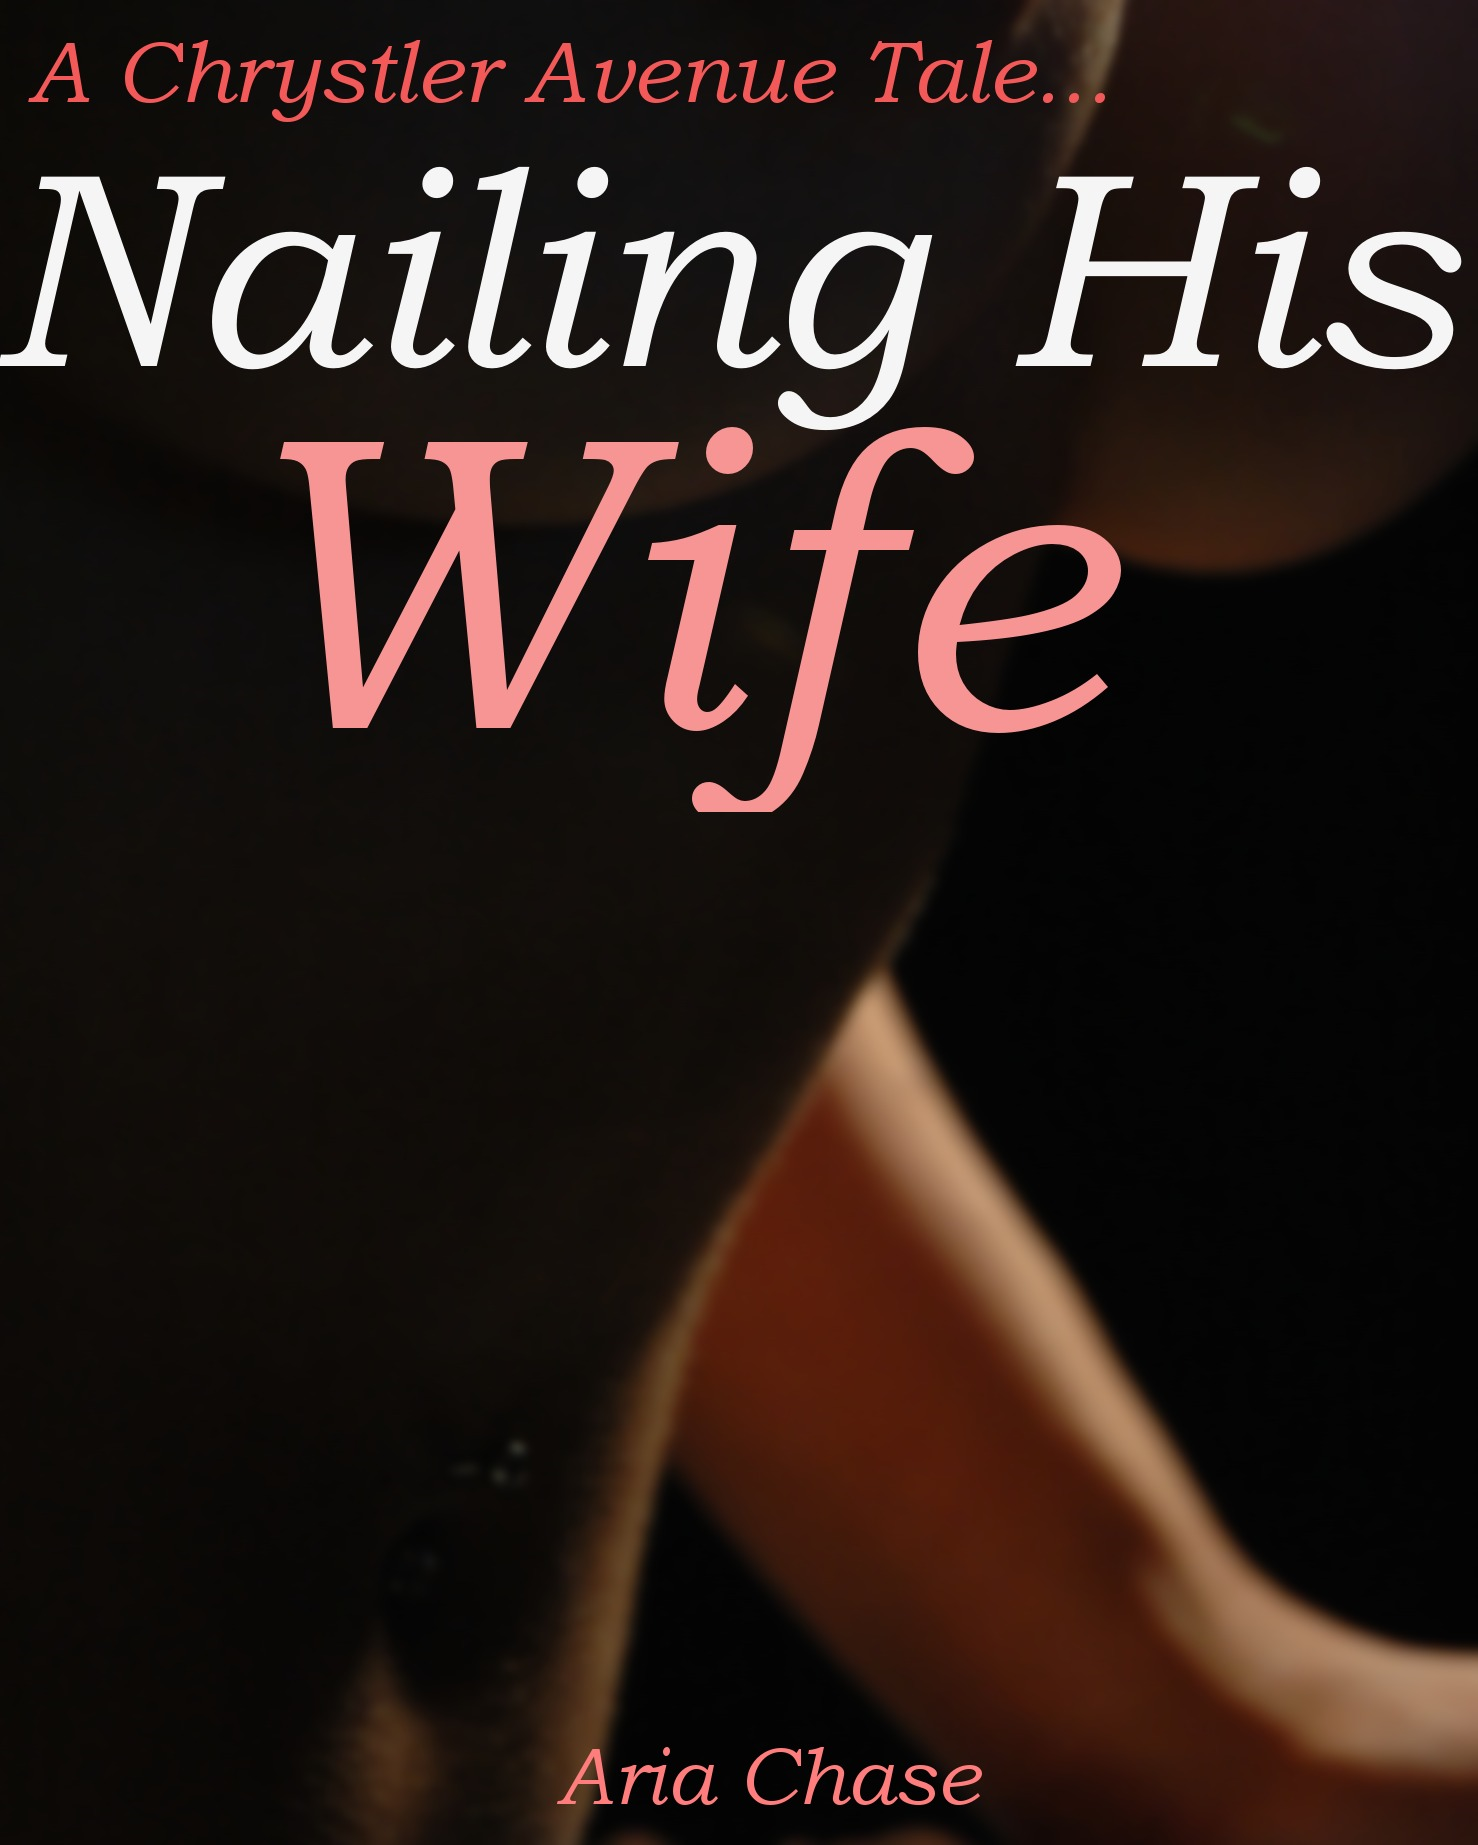 Nailing His Wife